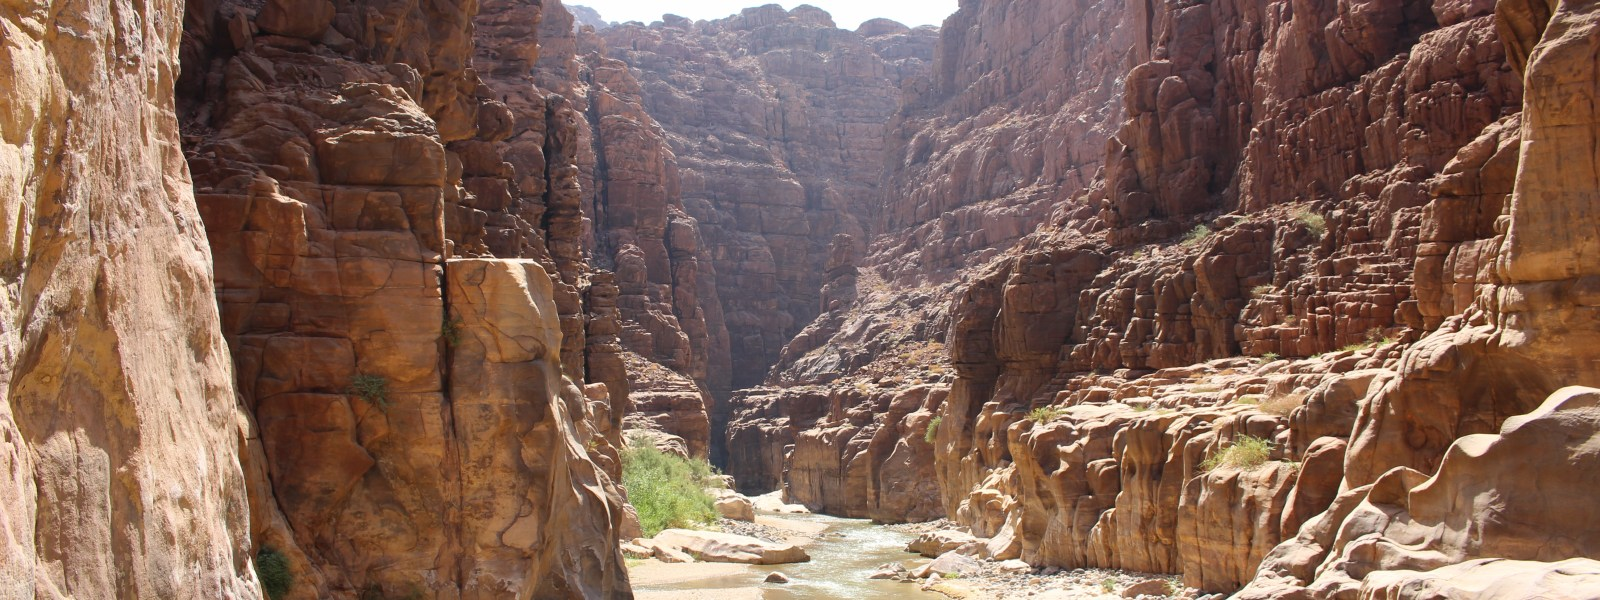 Hiken in Wadi Mujib in Jordanië